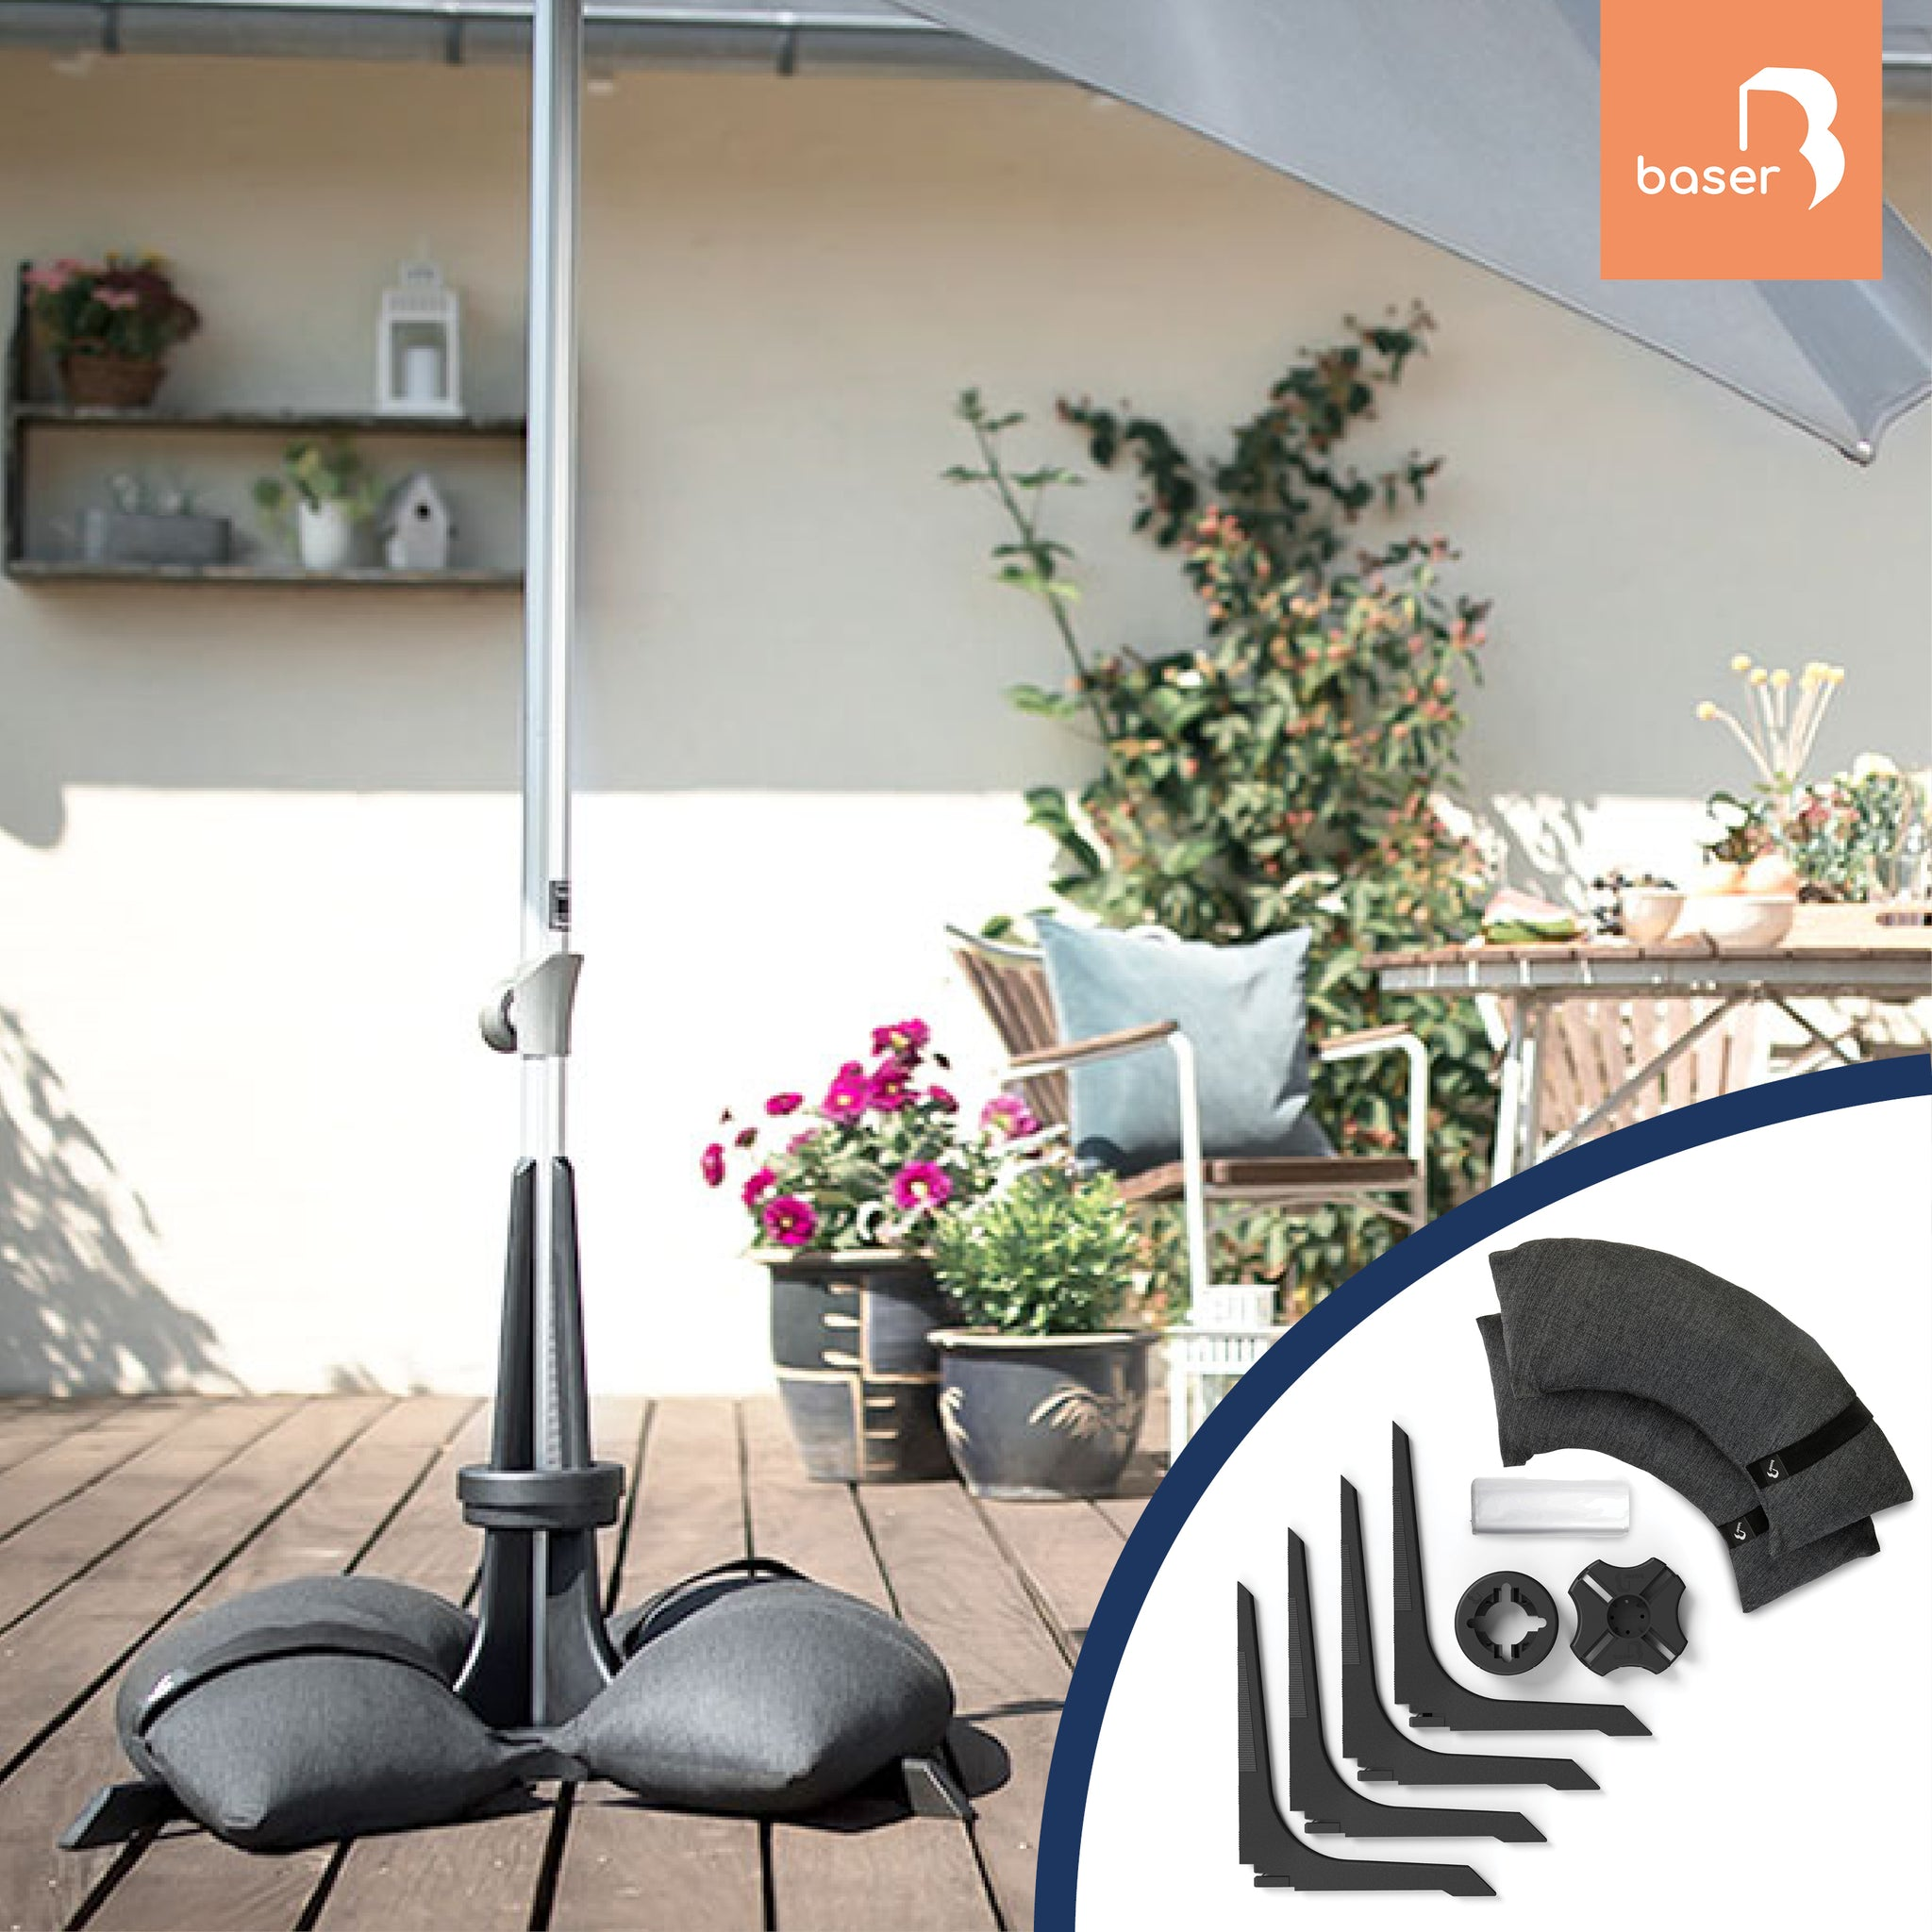 Baser parasol Base with sandbags Baser patio Umbrella base with sandbags